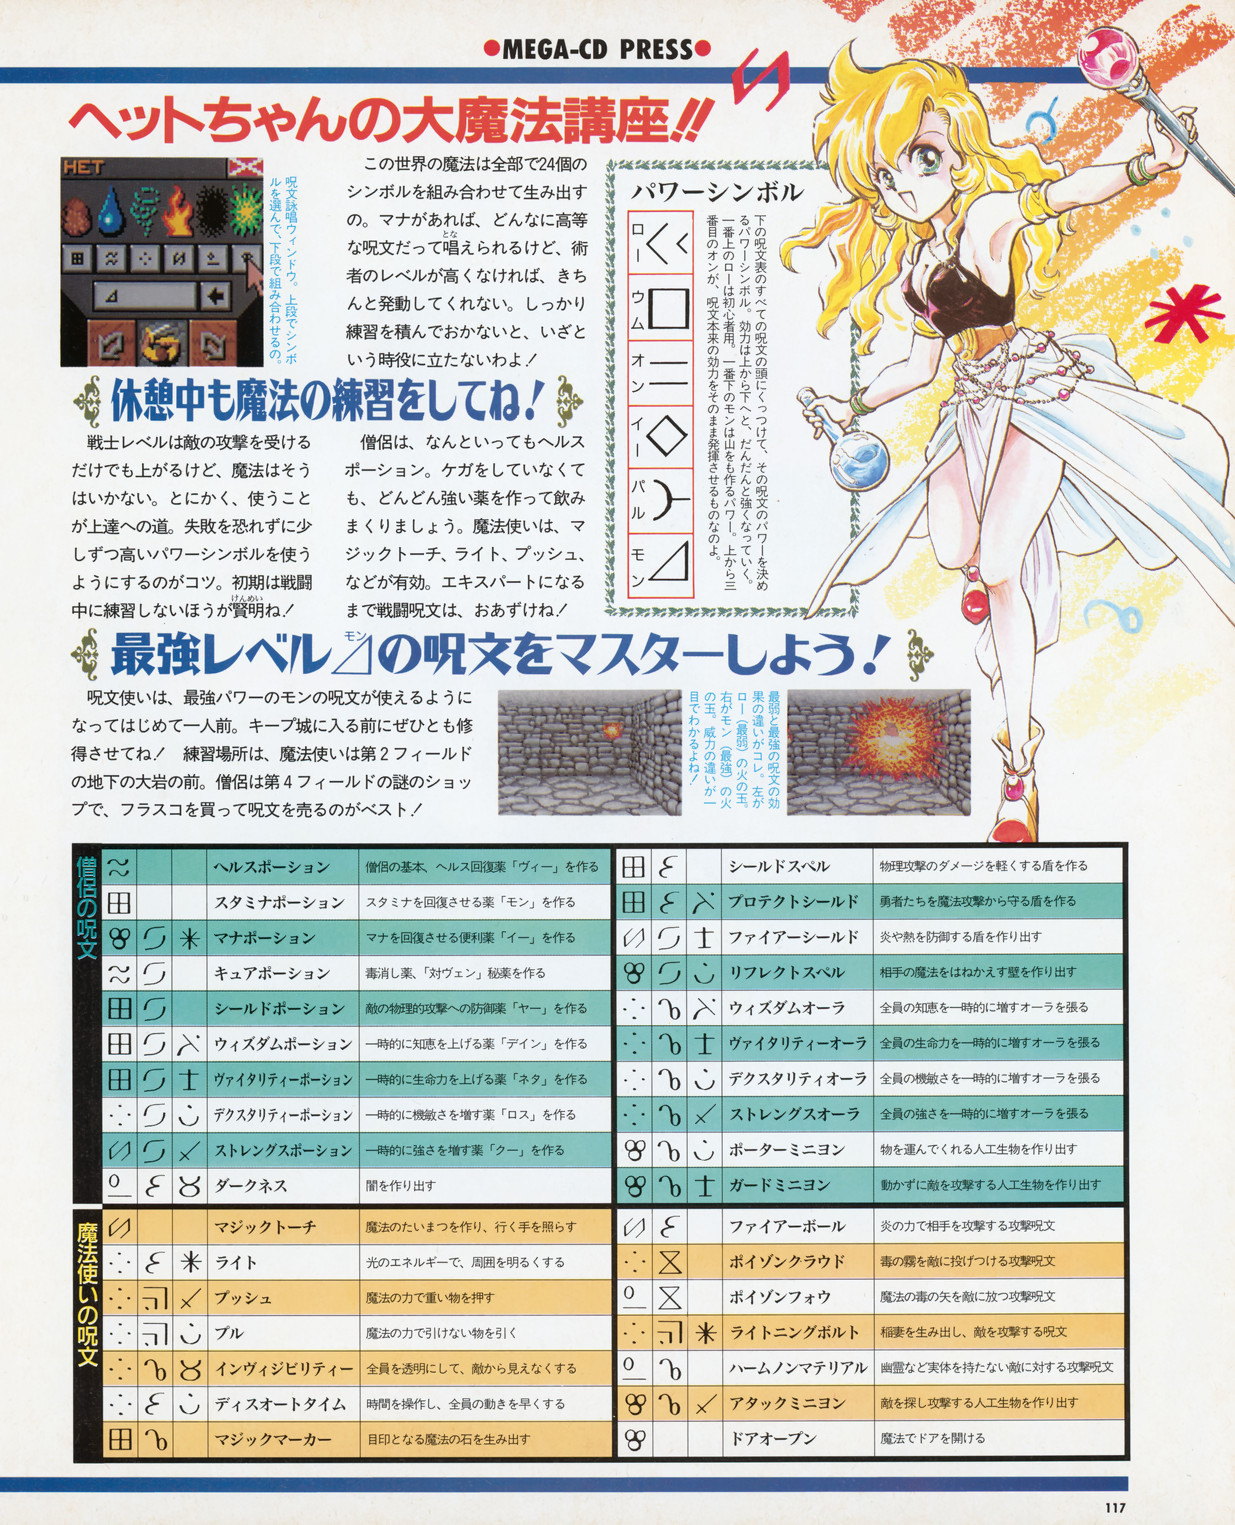 Dungeon Master II for Mega CD Hints published in Japanese magazine 'Beep! MegaDrive', May 1994, Page 117